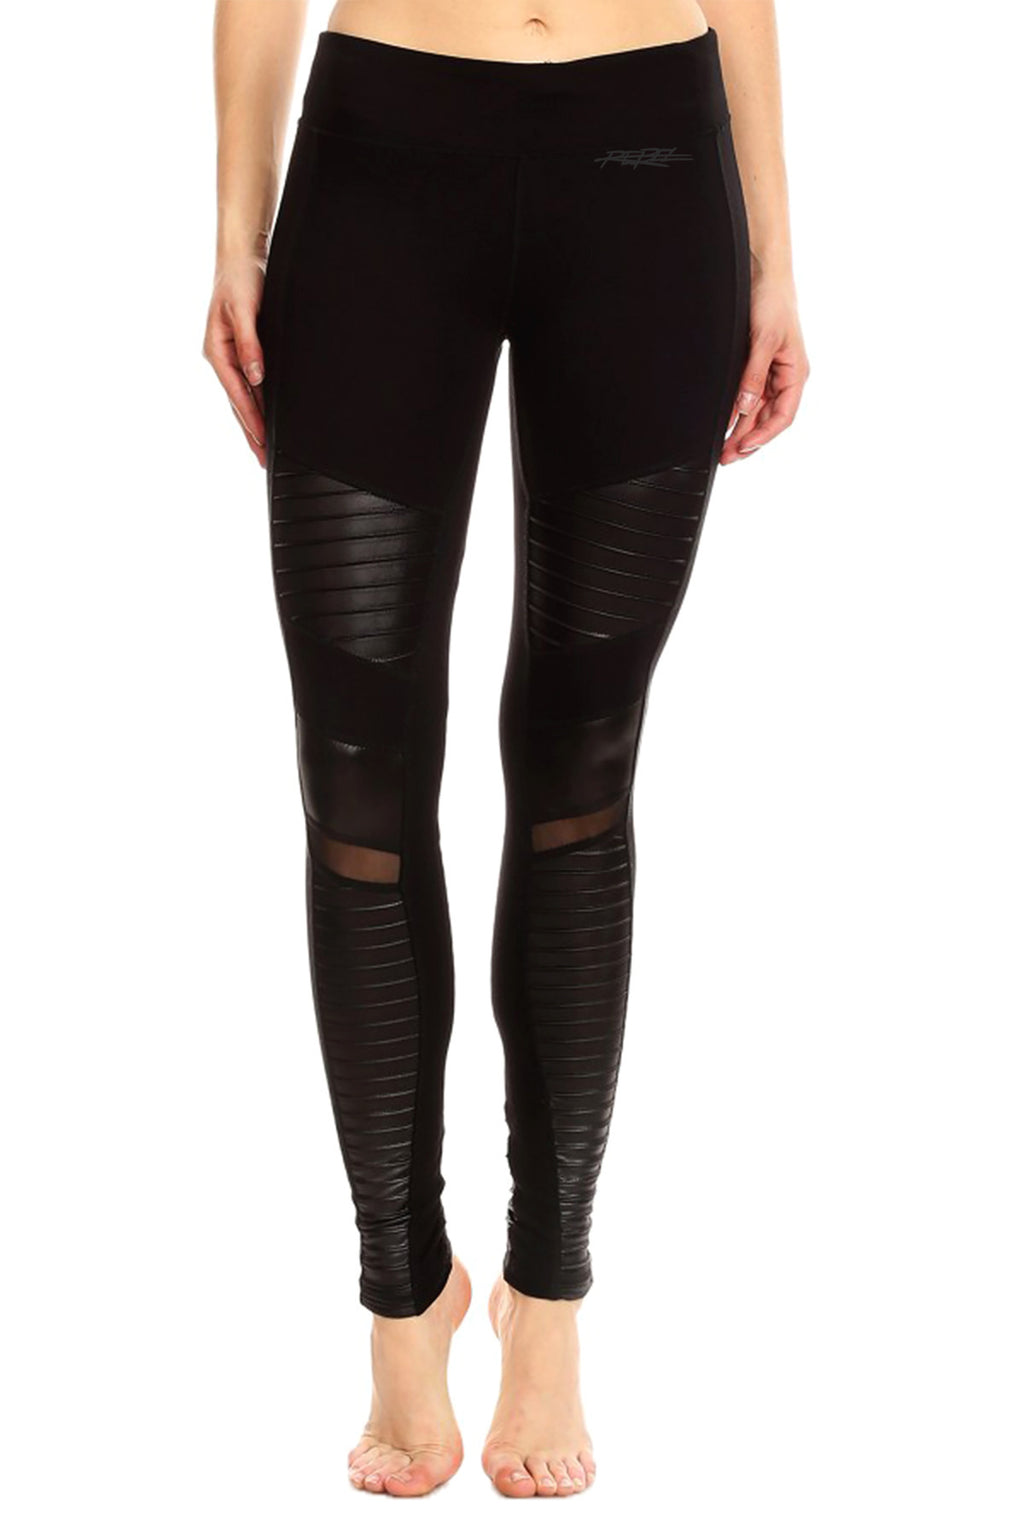 WOMENS HIGH-WAISTED SOFT LEATHER MOTO YOGA LEGGINGS